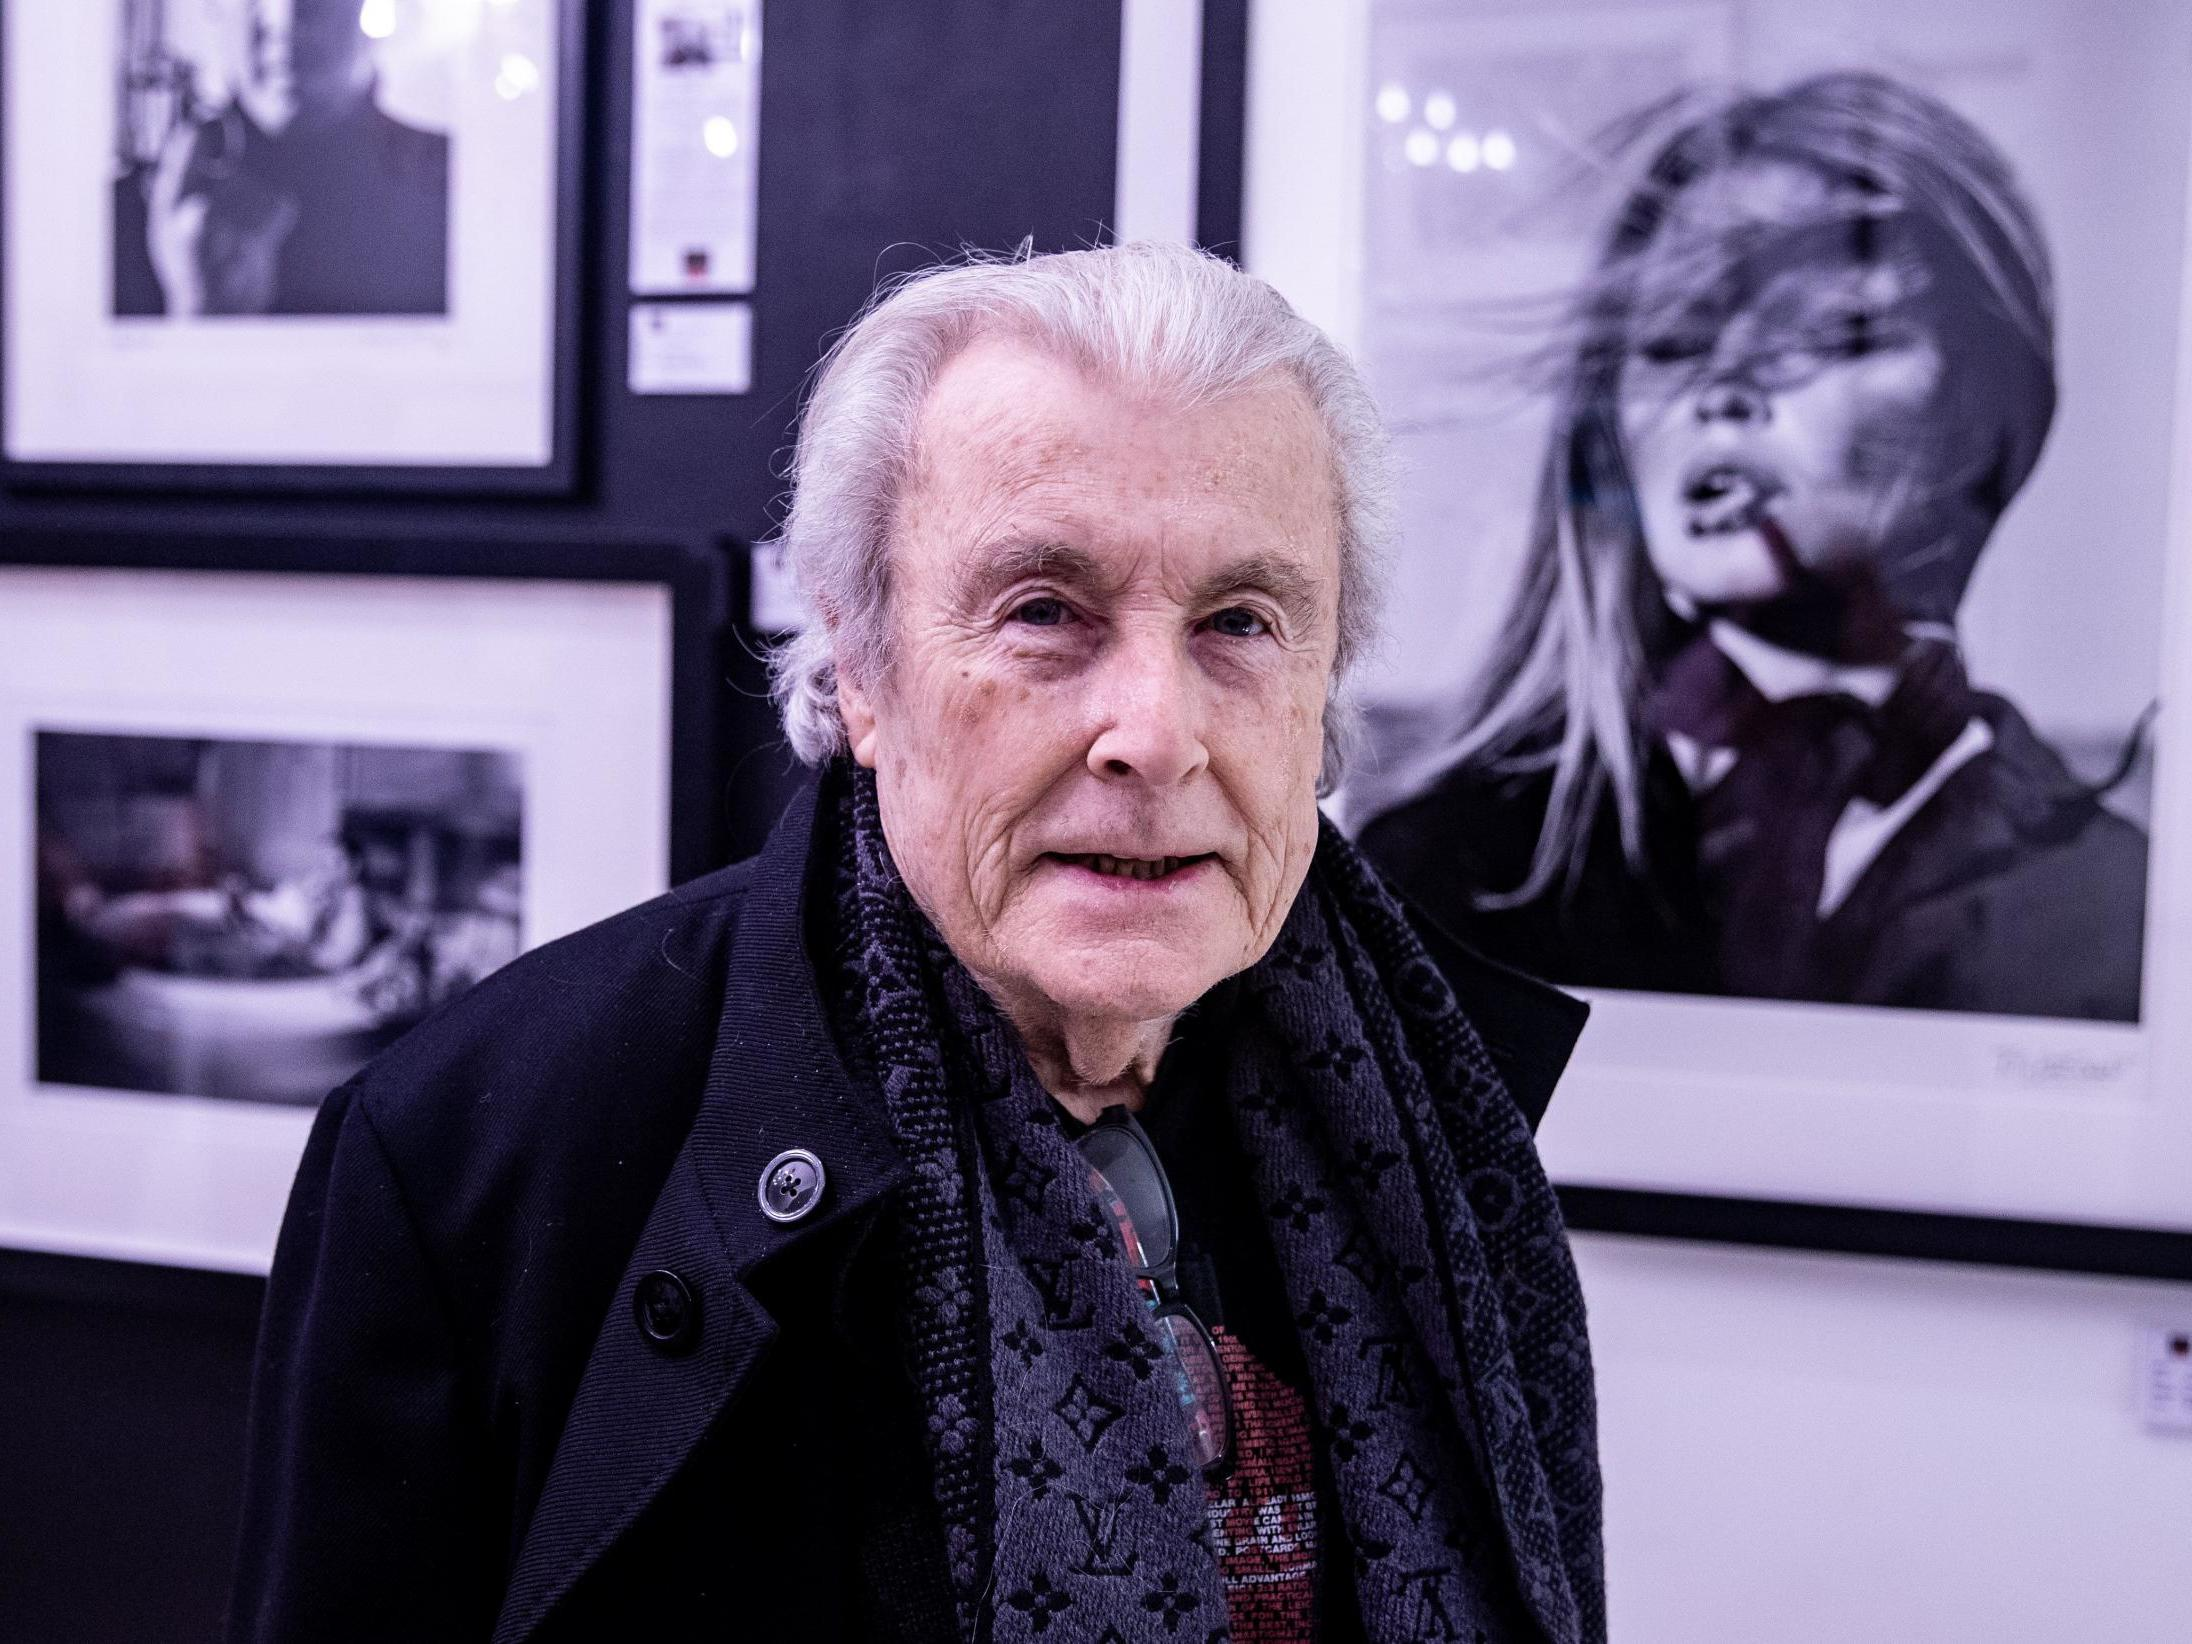 Terry O'Neill death: Photographer who worked with The Beatles and Rolling Stones dies aged 81